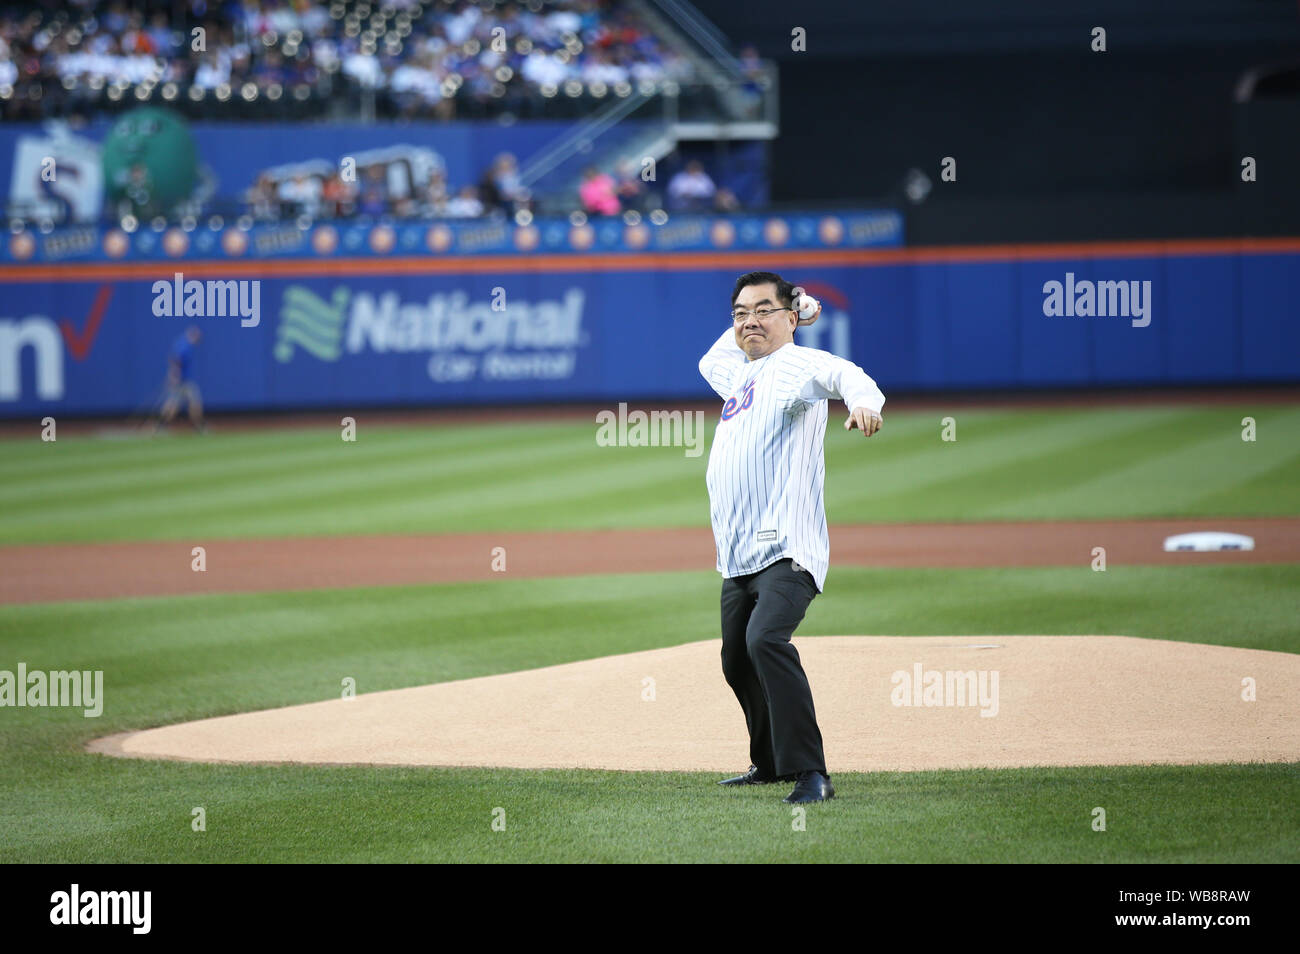 """New York, USA. 24th Aug, 2019. Huang Ping, Chinese Consul General in New York, throws a ceremonial first pitch to start an MLB game between the Mets and the Atlanta Braves in Citi Field, New York, the United States, Aug. 24, 2019. The 12th annual event """"An Evening of Chinese Culture"""" was held on Saturday evening in New York's Citi Field, an iconic stadium serving as the home field for the New York Mets. Credit: Qin Lang/Xinhua/Alamy Live News Stock Photo"""